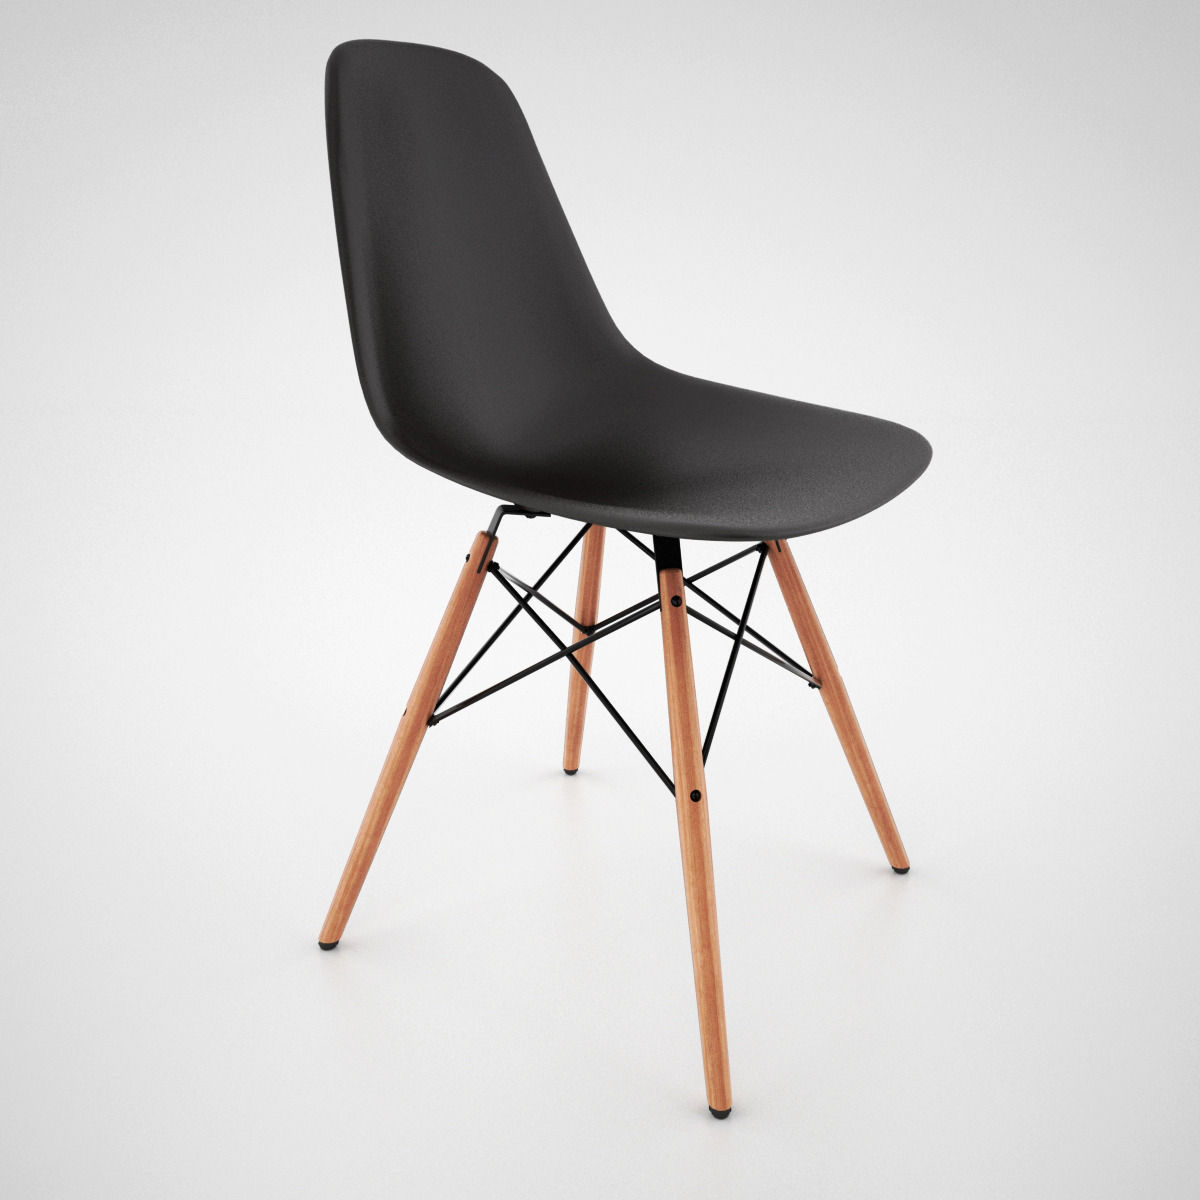 ... Vitra Dsw Chair And Eames Table 3d Model Max Obj Fbx Mat 6 ...